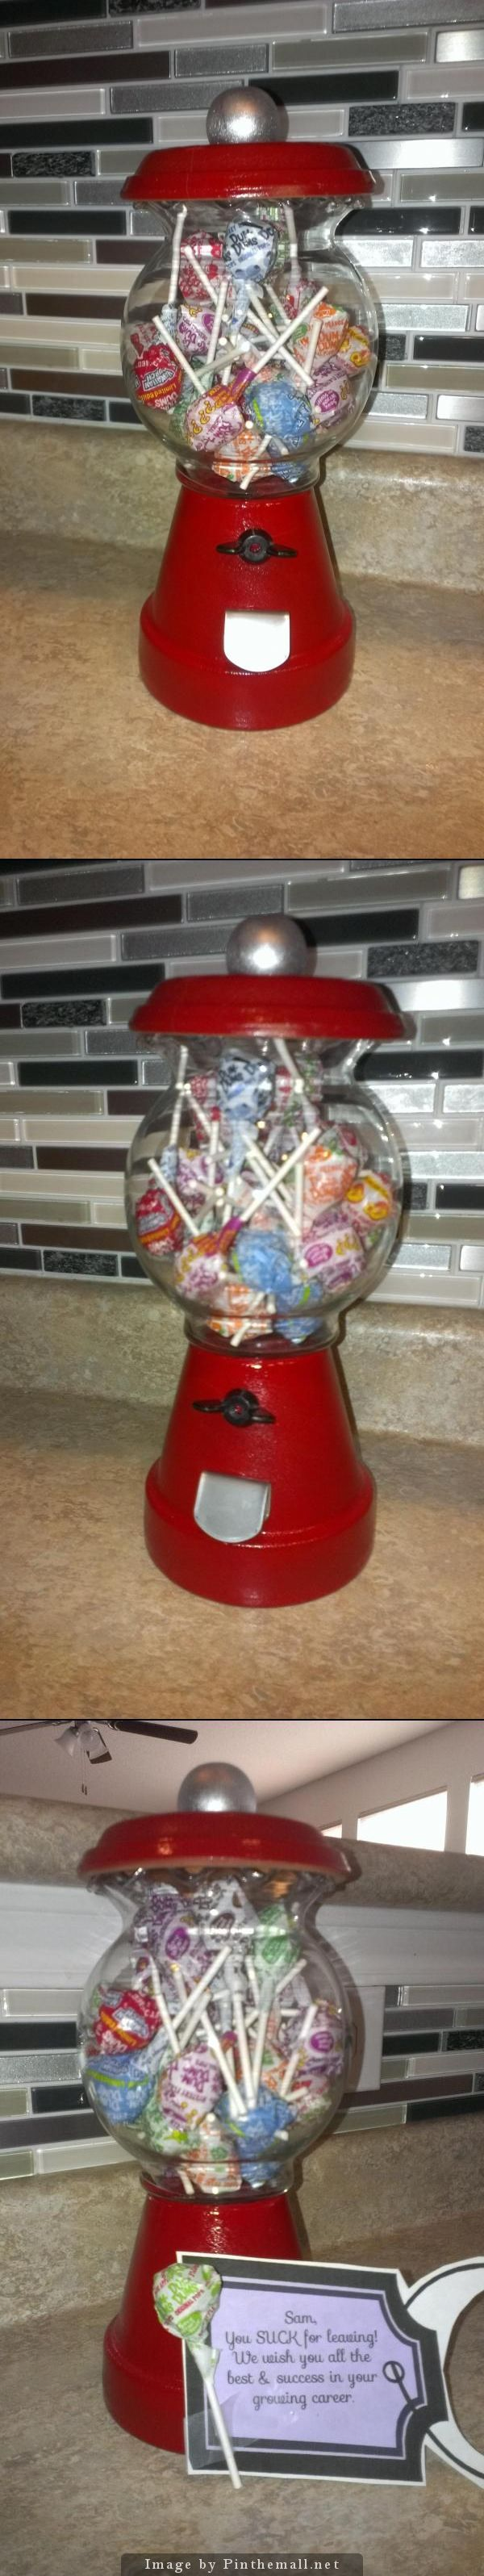 "DIY gumball machine/candy jar. Going Away gift for co-worker ""You SUCK for leaving!"" -flower pot, ""fish bowl"" from Michaels, wooden spool, wing nut & folded kids 'dog tag'. Under $5 to make. - created via http://pinthemall.net"